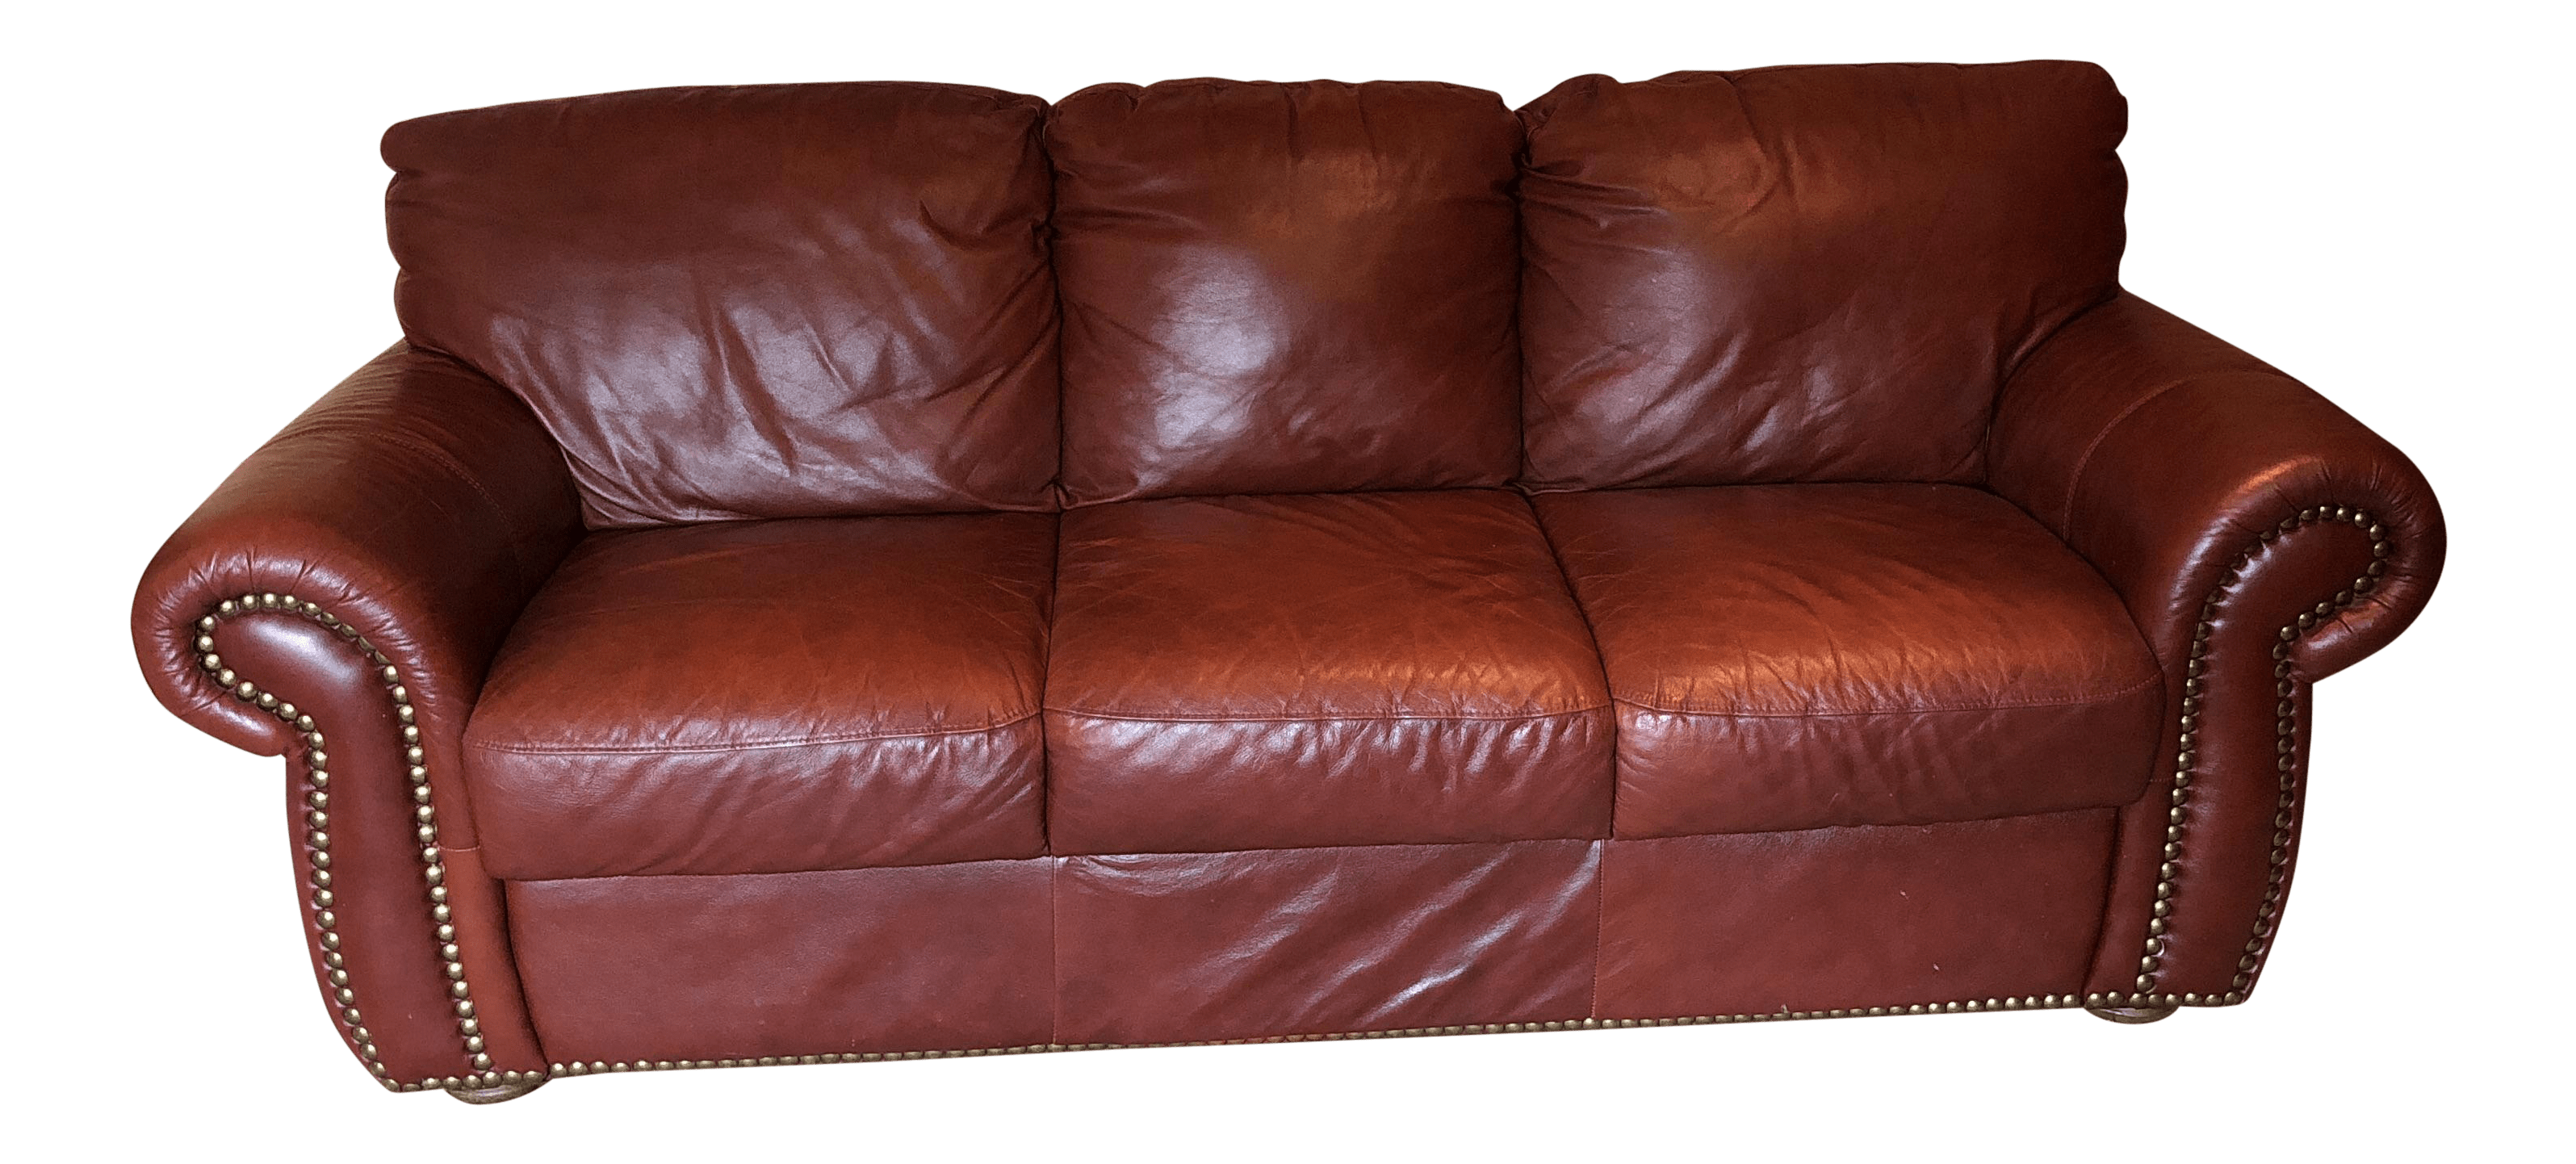 Divani Incanto Group Chateau D Ax Divani Italian Red Leather Sofa